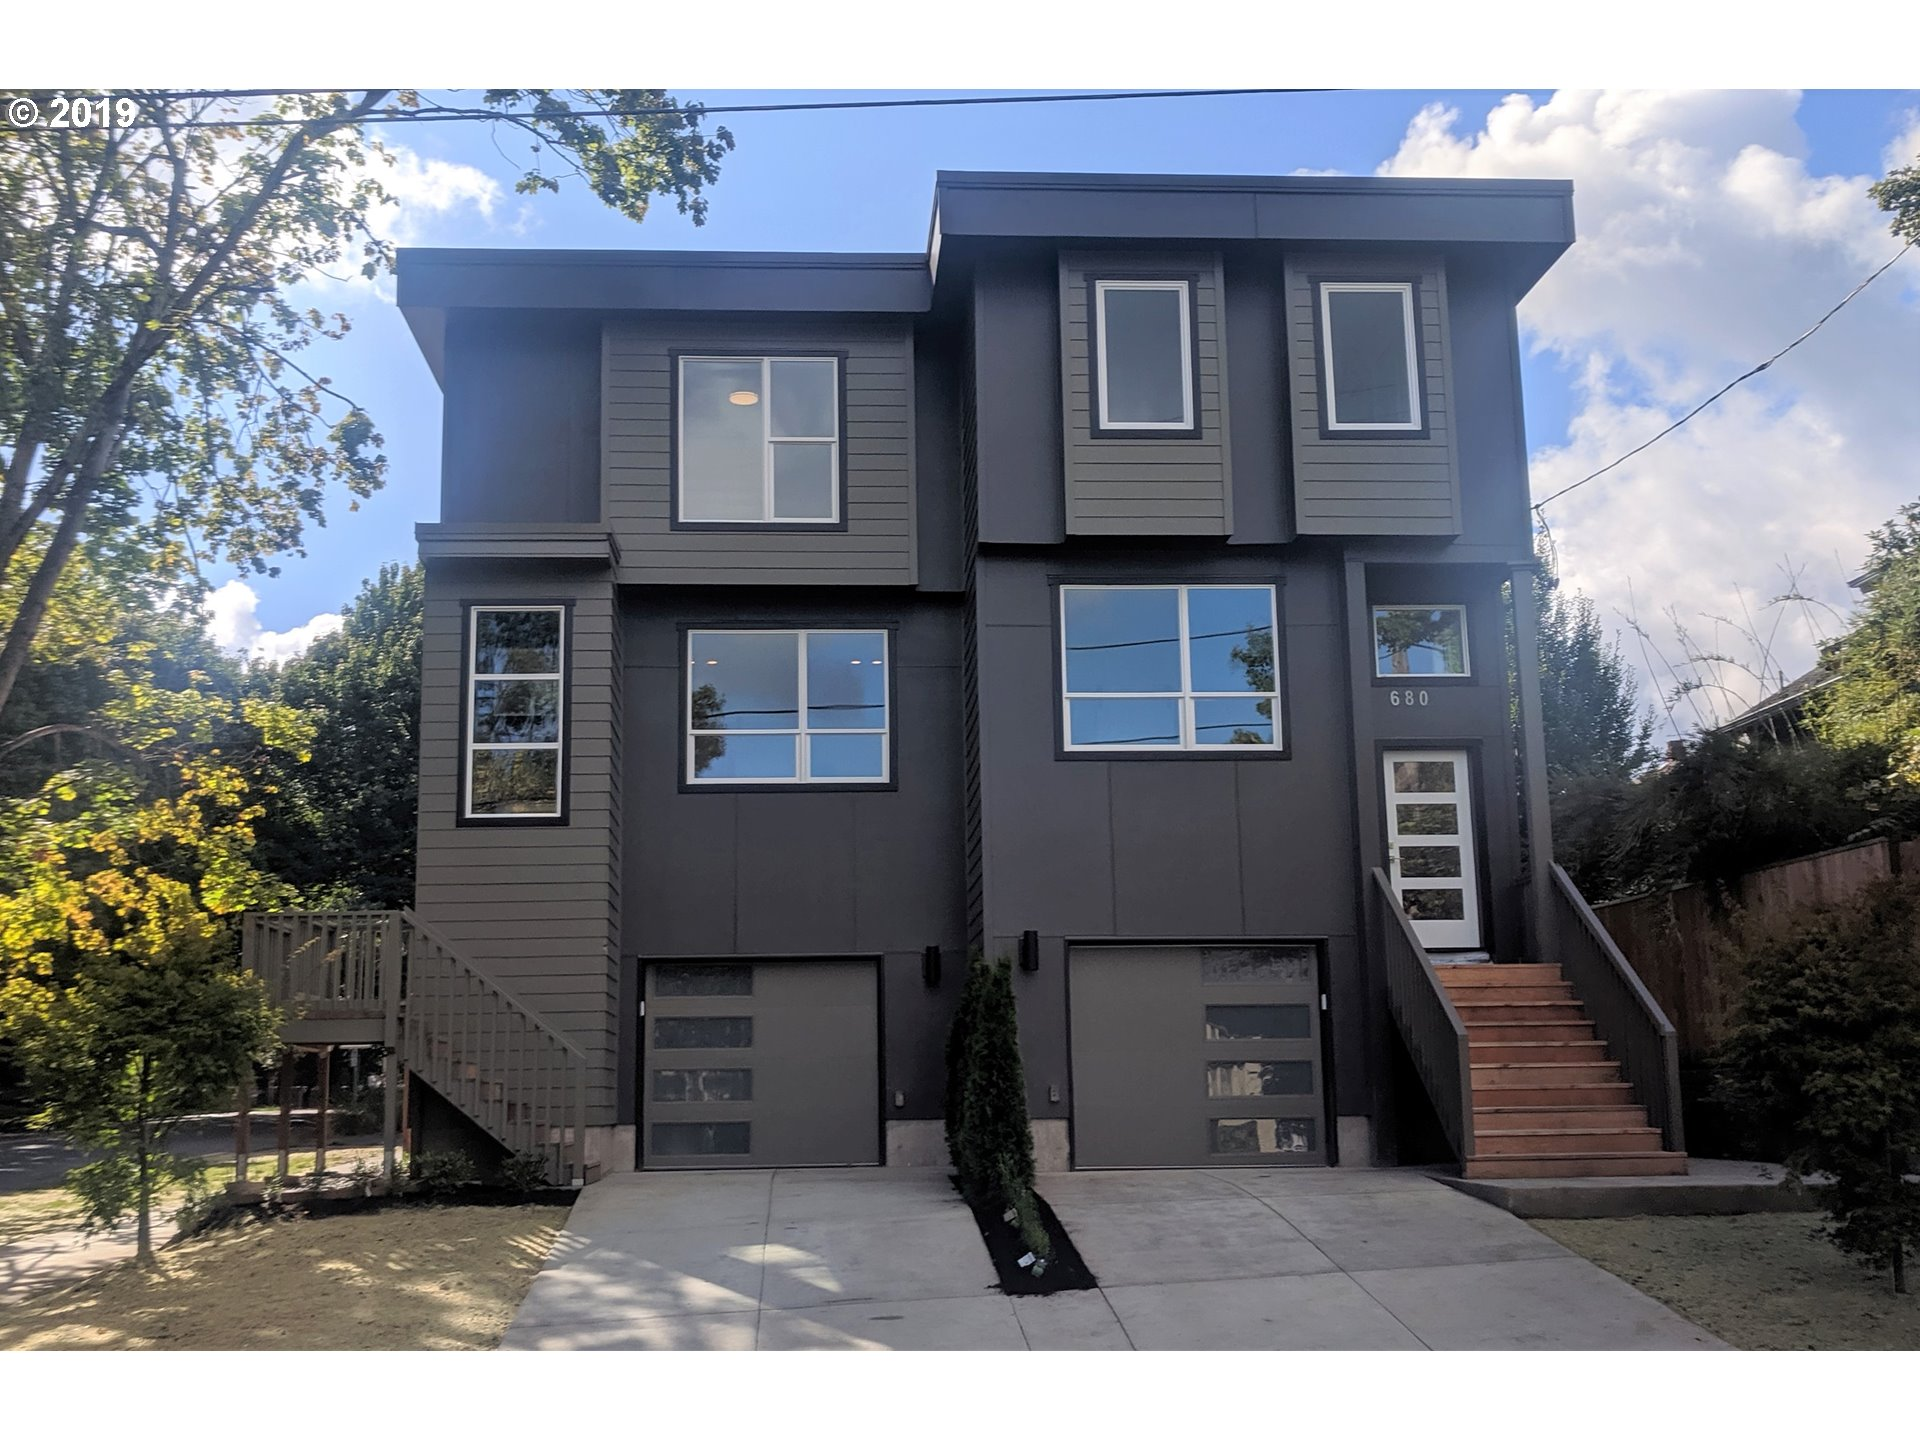 Beautiful modern townhouse style condo in the heart of the Eliot/Irvington neighborhood. Open floorplan lives large with 4 bedrooms and 3.5 bathrooms. Lots of natural light and high end finishes. Basement guest suite has separate entrance. Across the street from Irving Park.